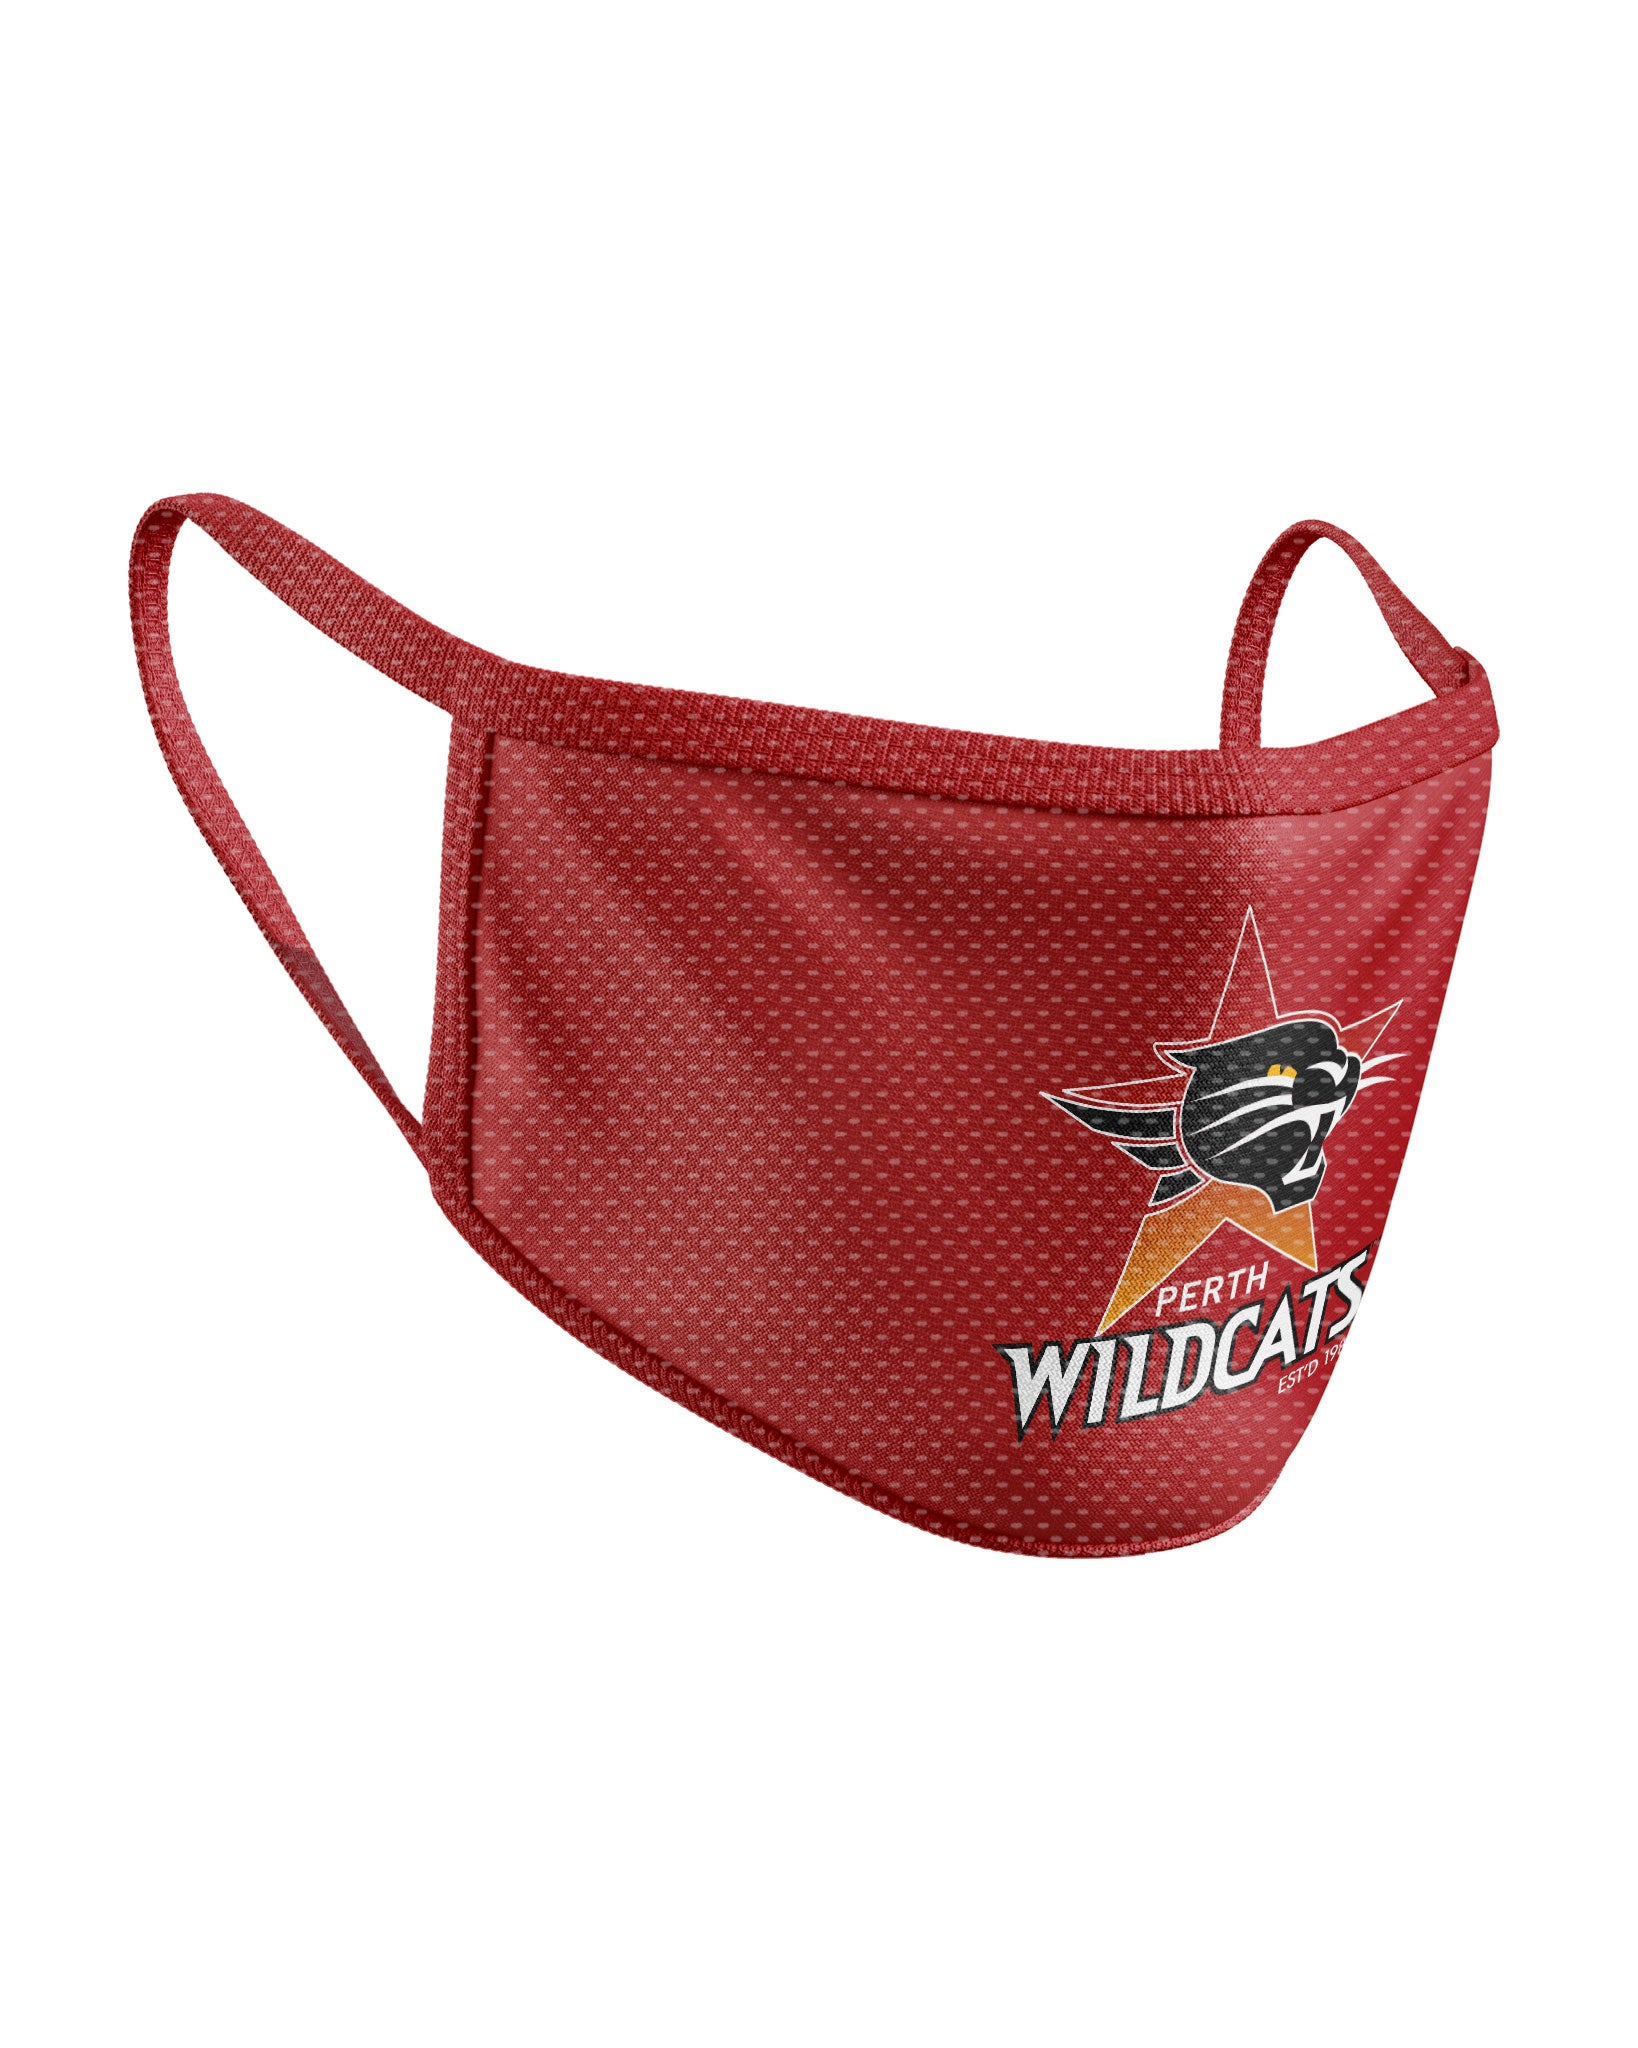 Perth Wildcats Face Mask